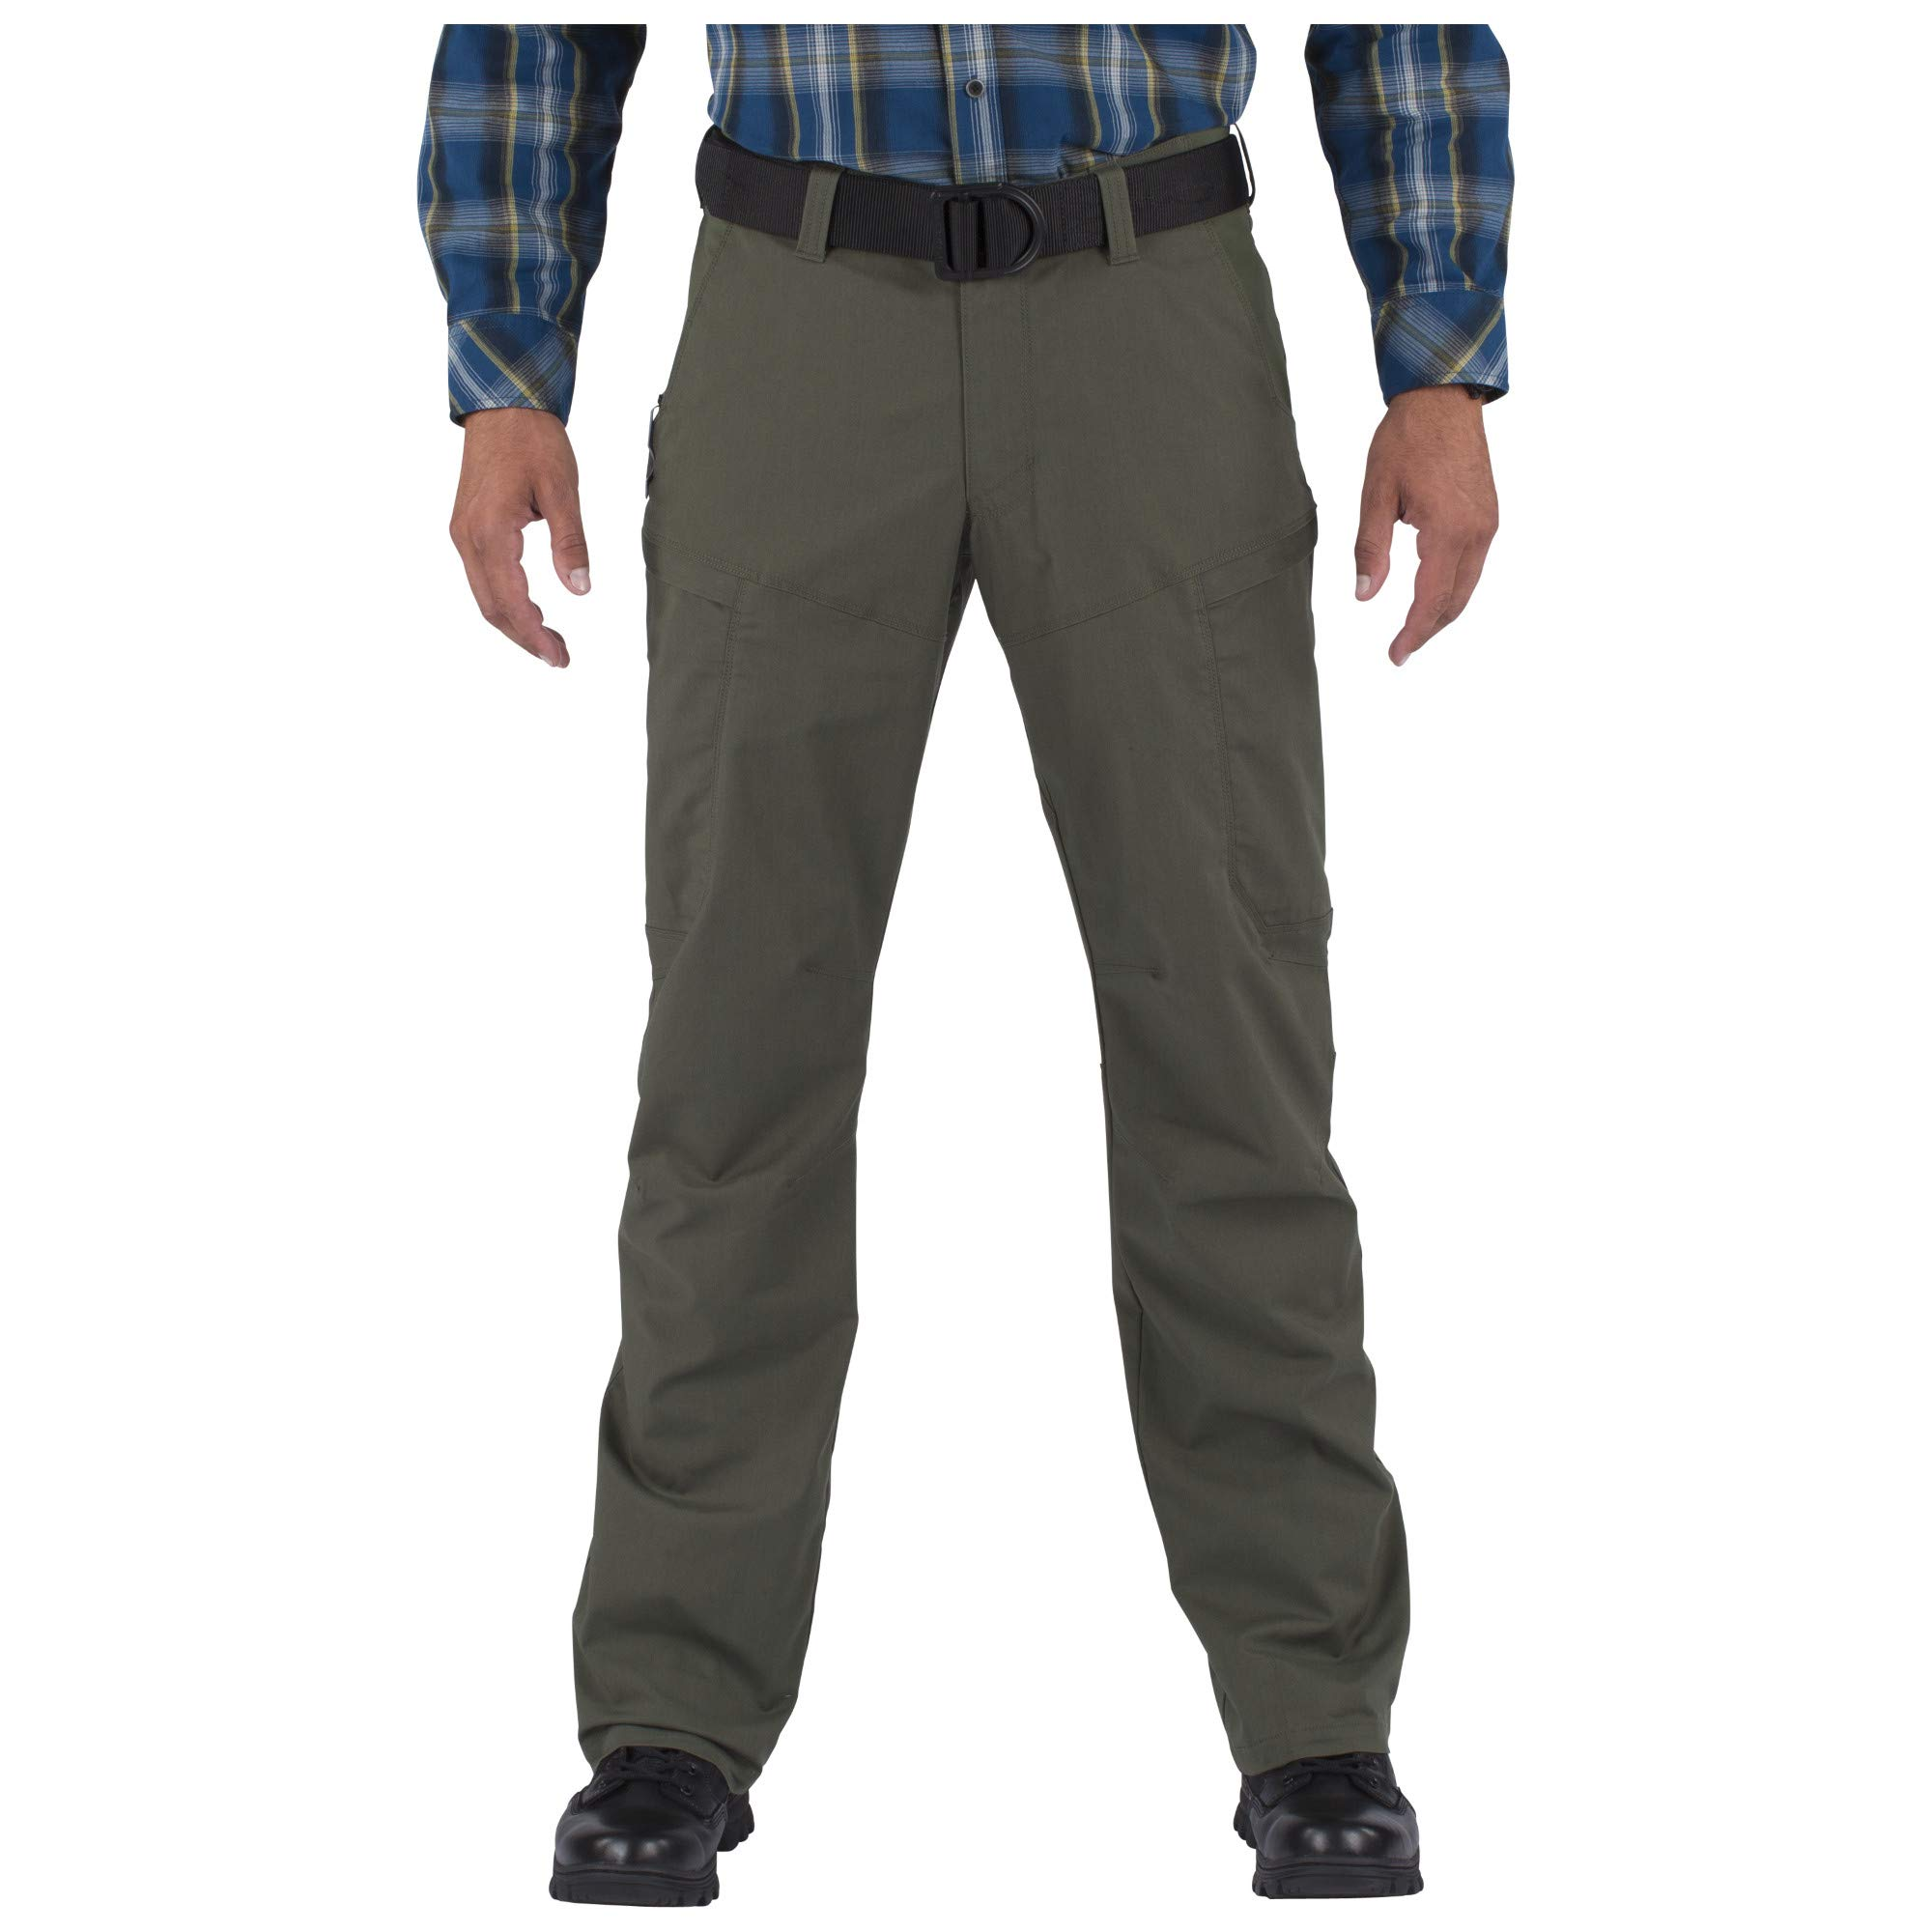 5.11 Men's APEX EDC Stealth Cargo Pocket Tactical Pant Style 74434, TDU Green, 33W x 32L by 5.11